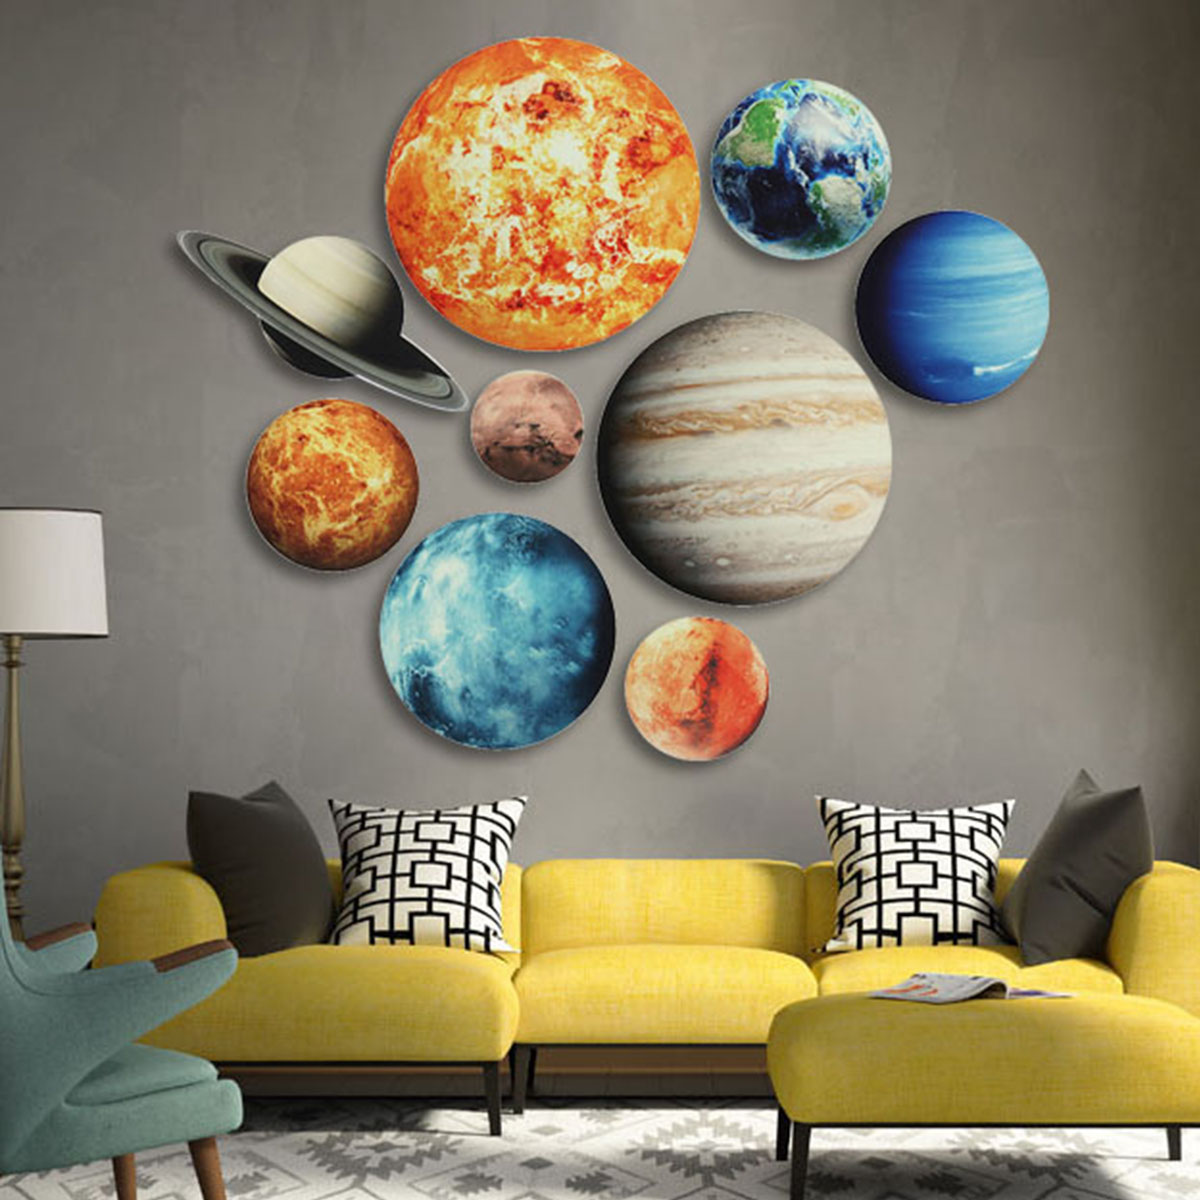 Solar System Wall Stickers Glow In The Dark 9 Planets Mars Outer Space Decal Bedroom Dining Room Decor